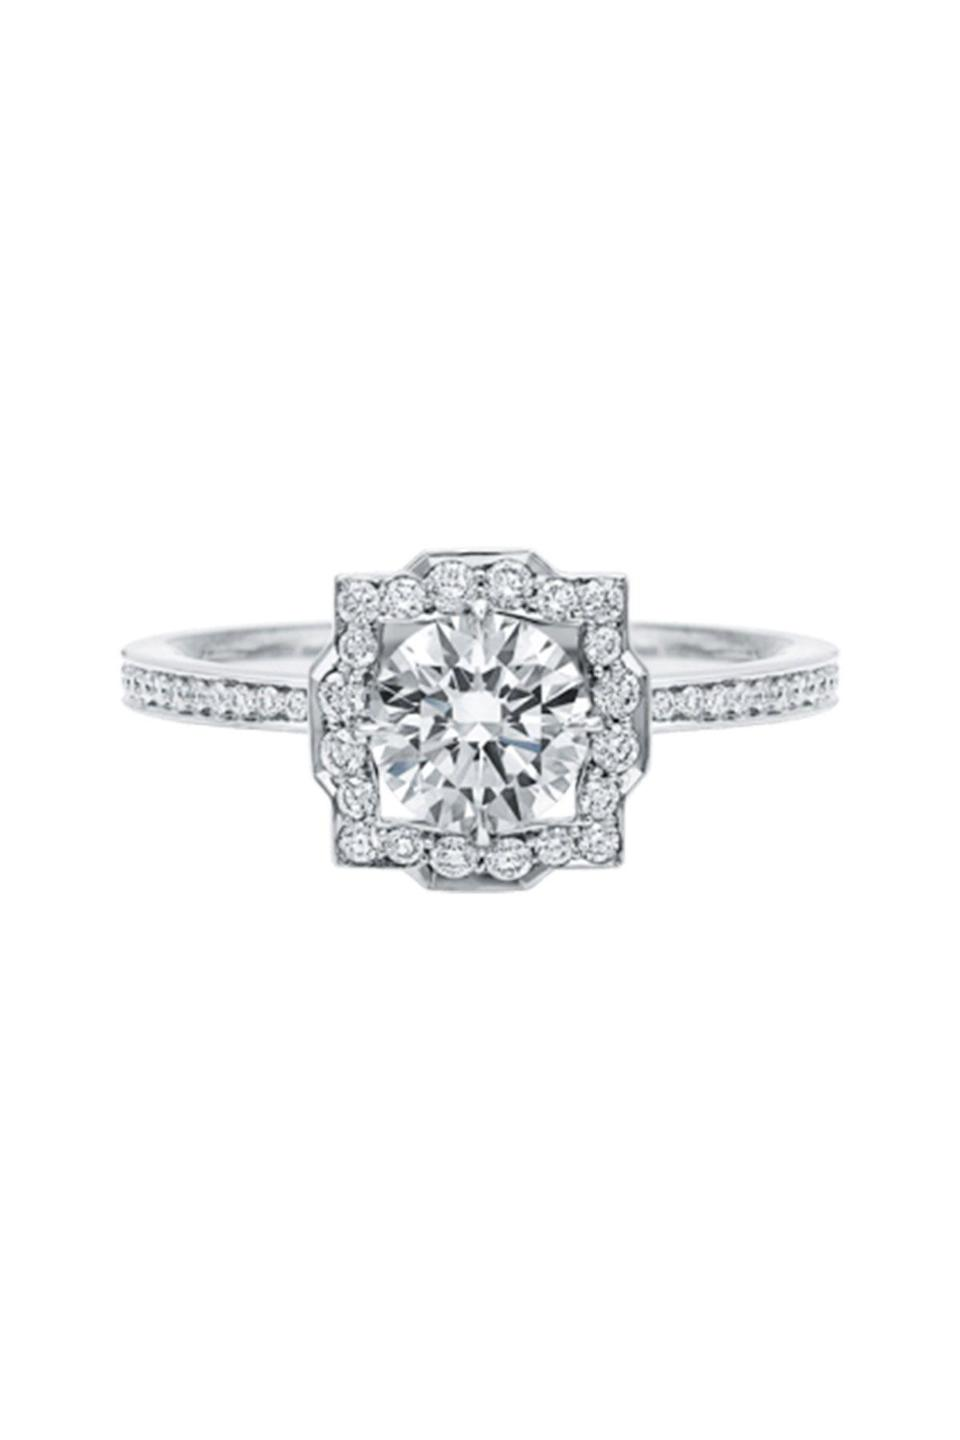 """<p><strong>Harry Winston</strong></p><p>harrywinston.com</p><p><strong>$12400.00</strong></p><p><a href=""""https://www.harrywinston.com/en/belle-harry-winston%E2%84%A2-round-brilliant-diamond-micropav%C3%A9-engagement-ring"""" rel=""""nofollow noopener"""" target=""""_blank"""" data-ylk=""""slk:Shop Now"""" class=""""link rapid-noclick-resp"""">Shop Now</a></p><p>Harry Winston's brilliant-cut diamond ring is the perfect balance of modern and vintage.</p>"""